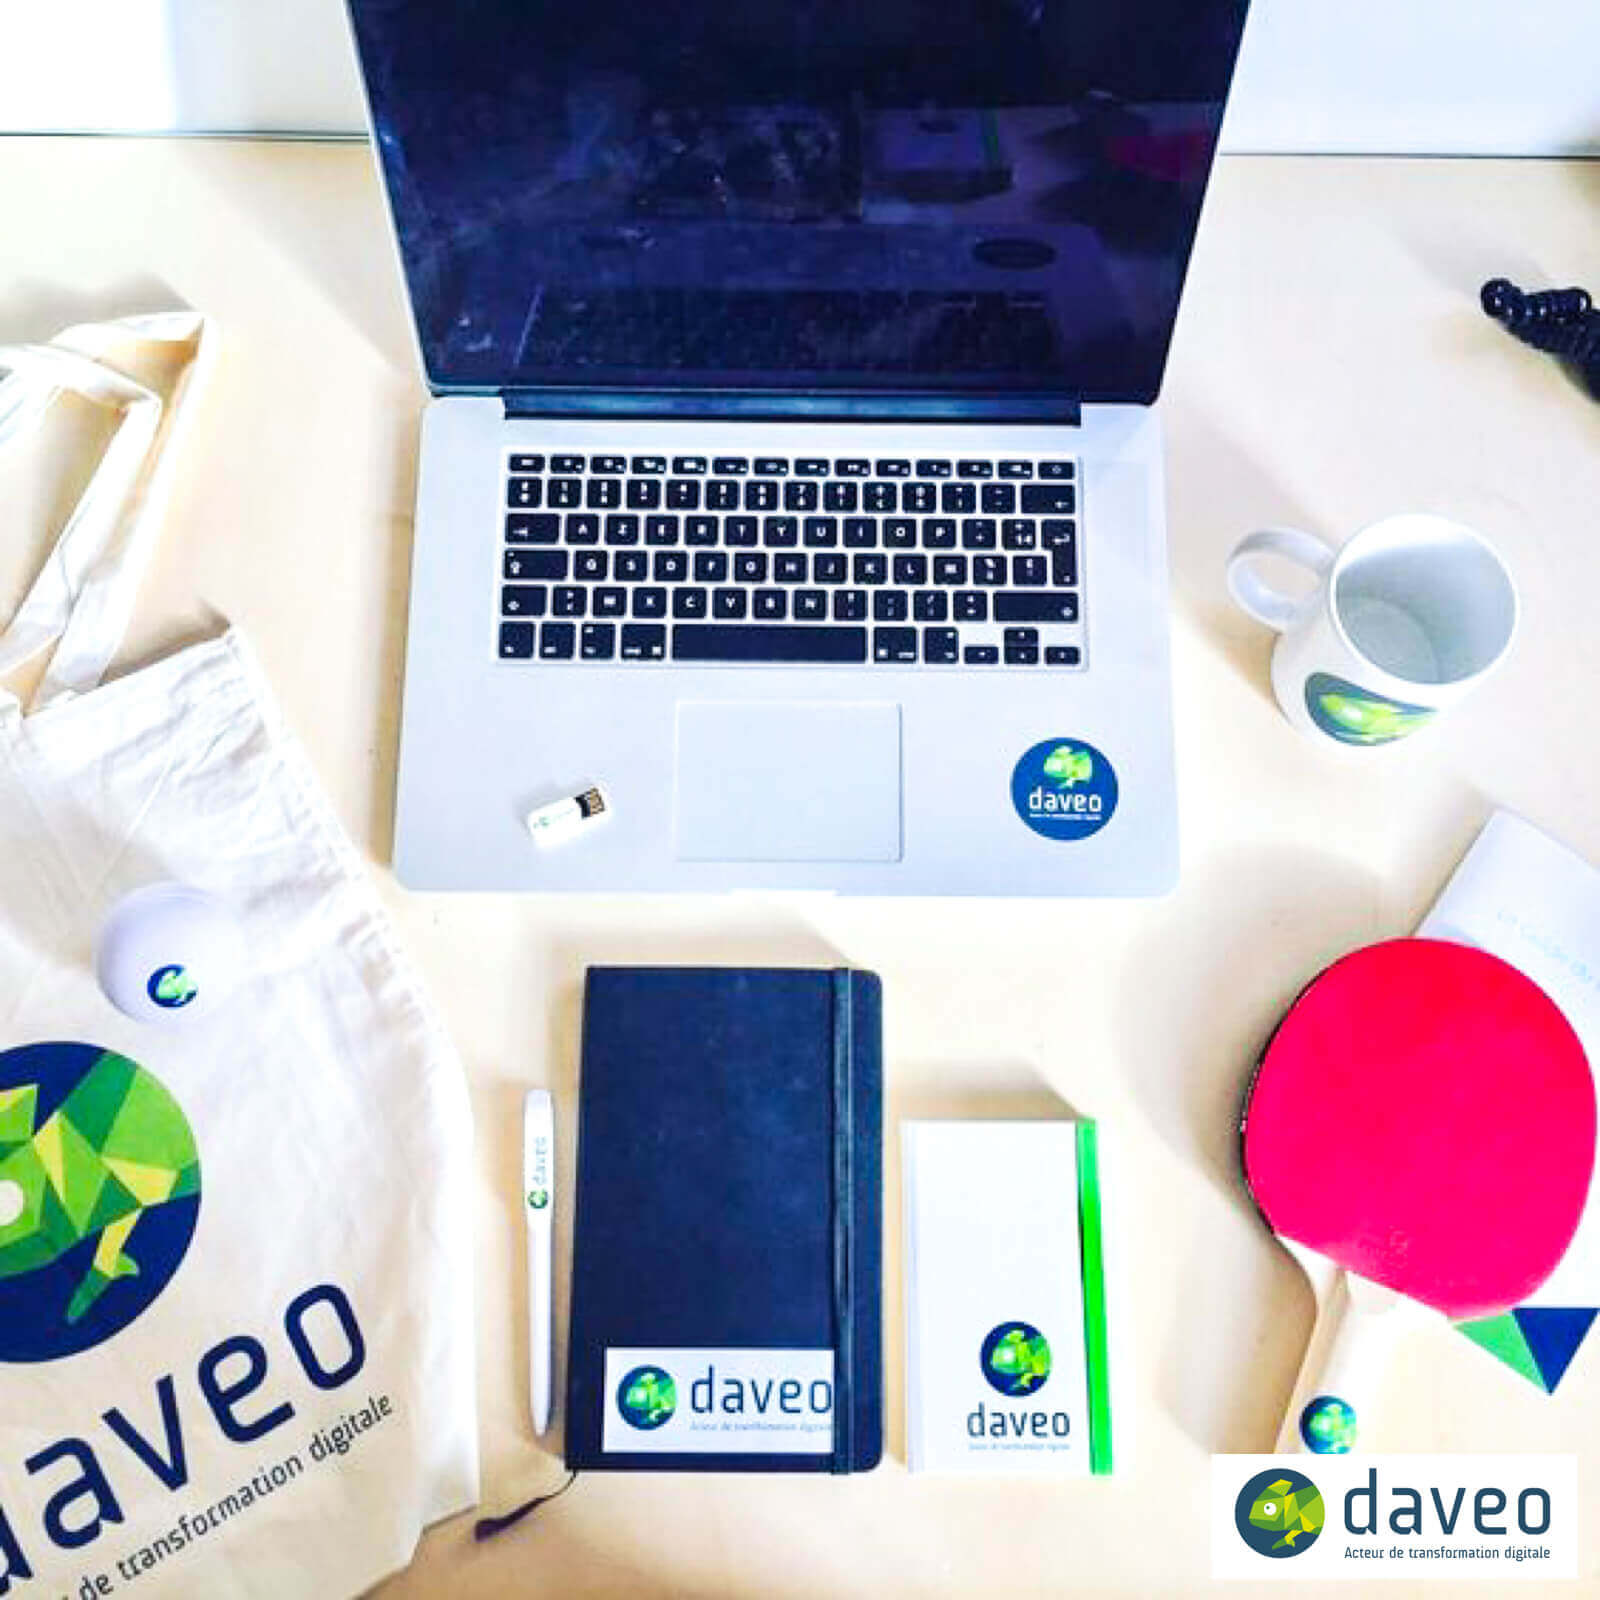 daveo-employee-welcome-kit-for-new-hires